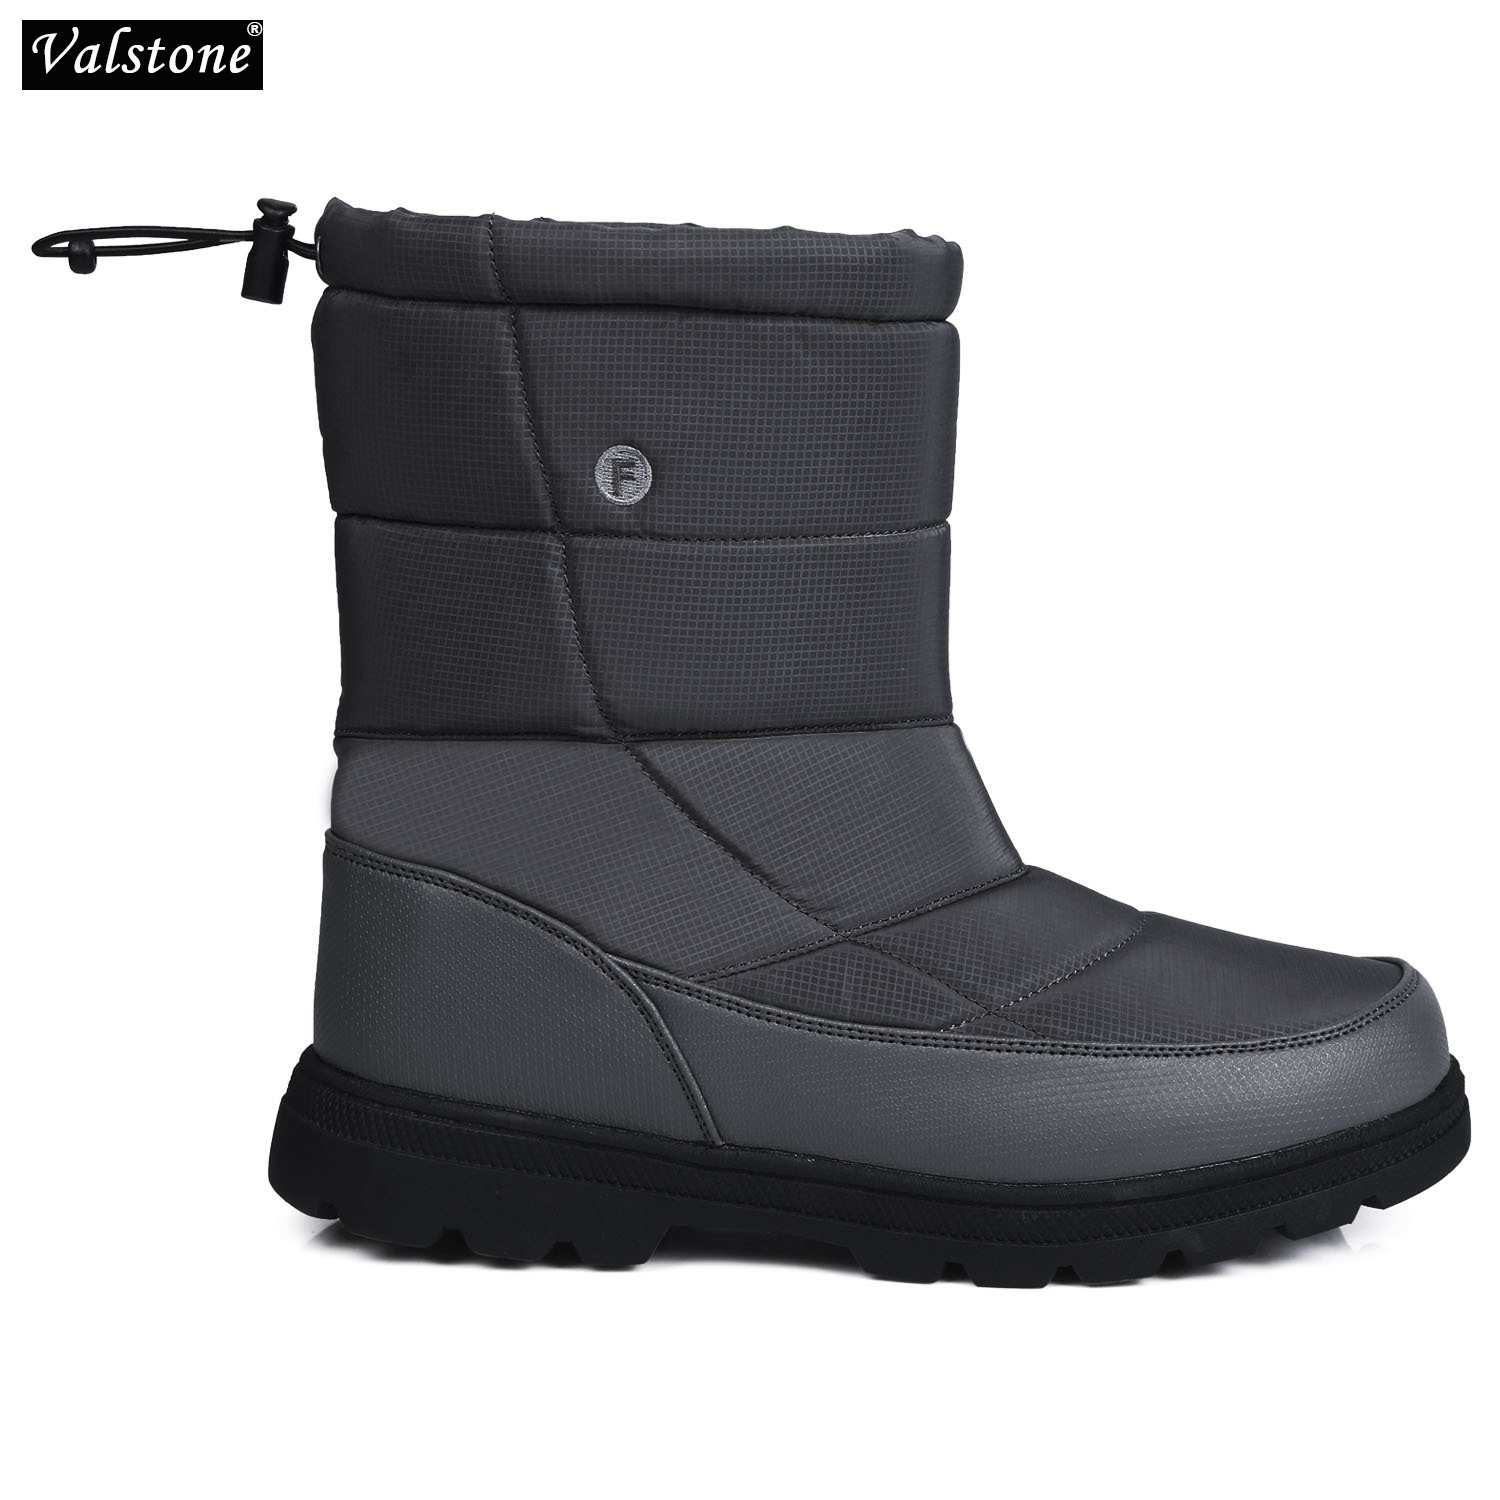 Waterproof Winter Unisex Snow Boots Couple Plush-lined Slip On Warm Ankle Boot